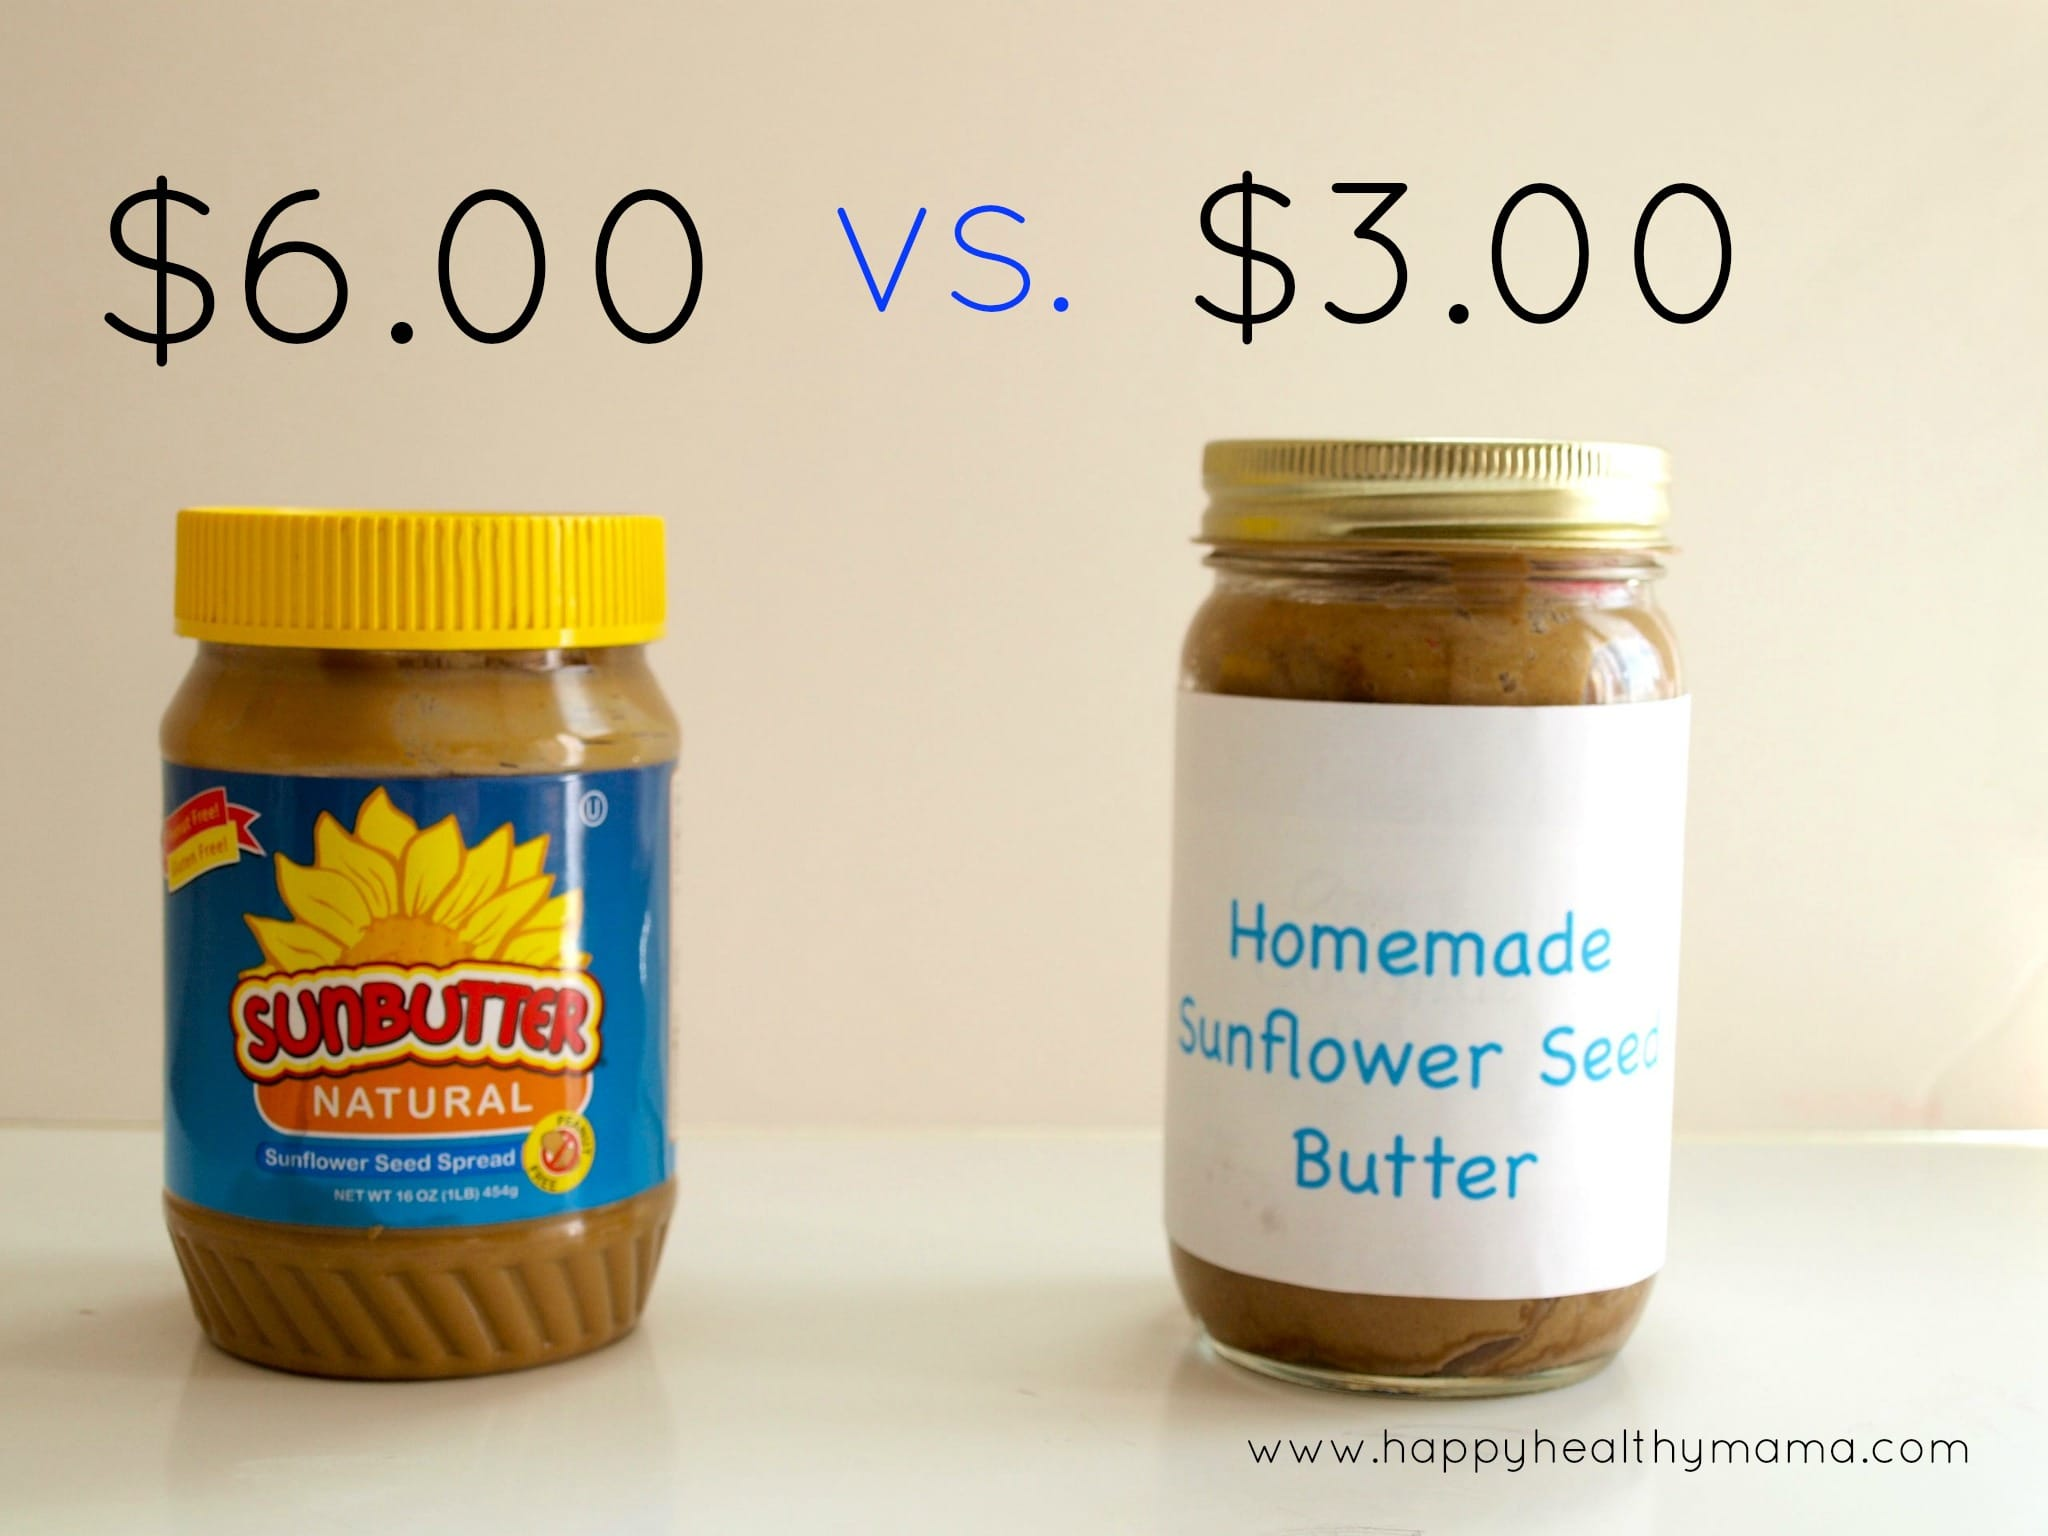 Is sunflower seed butter healthy